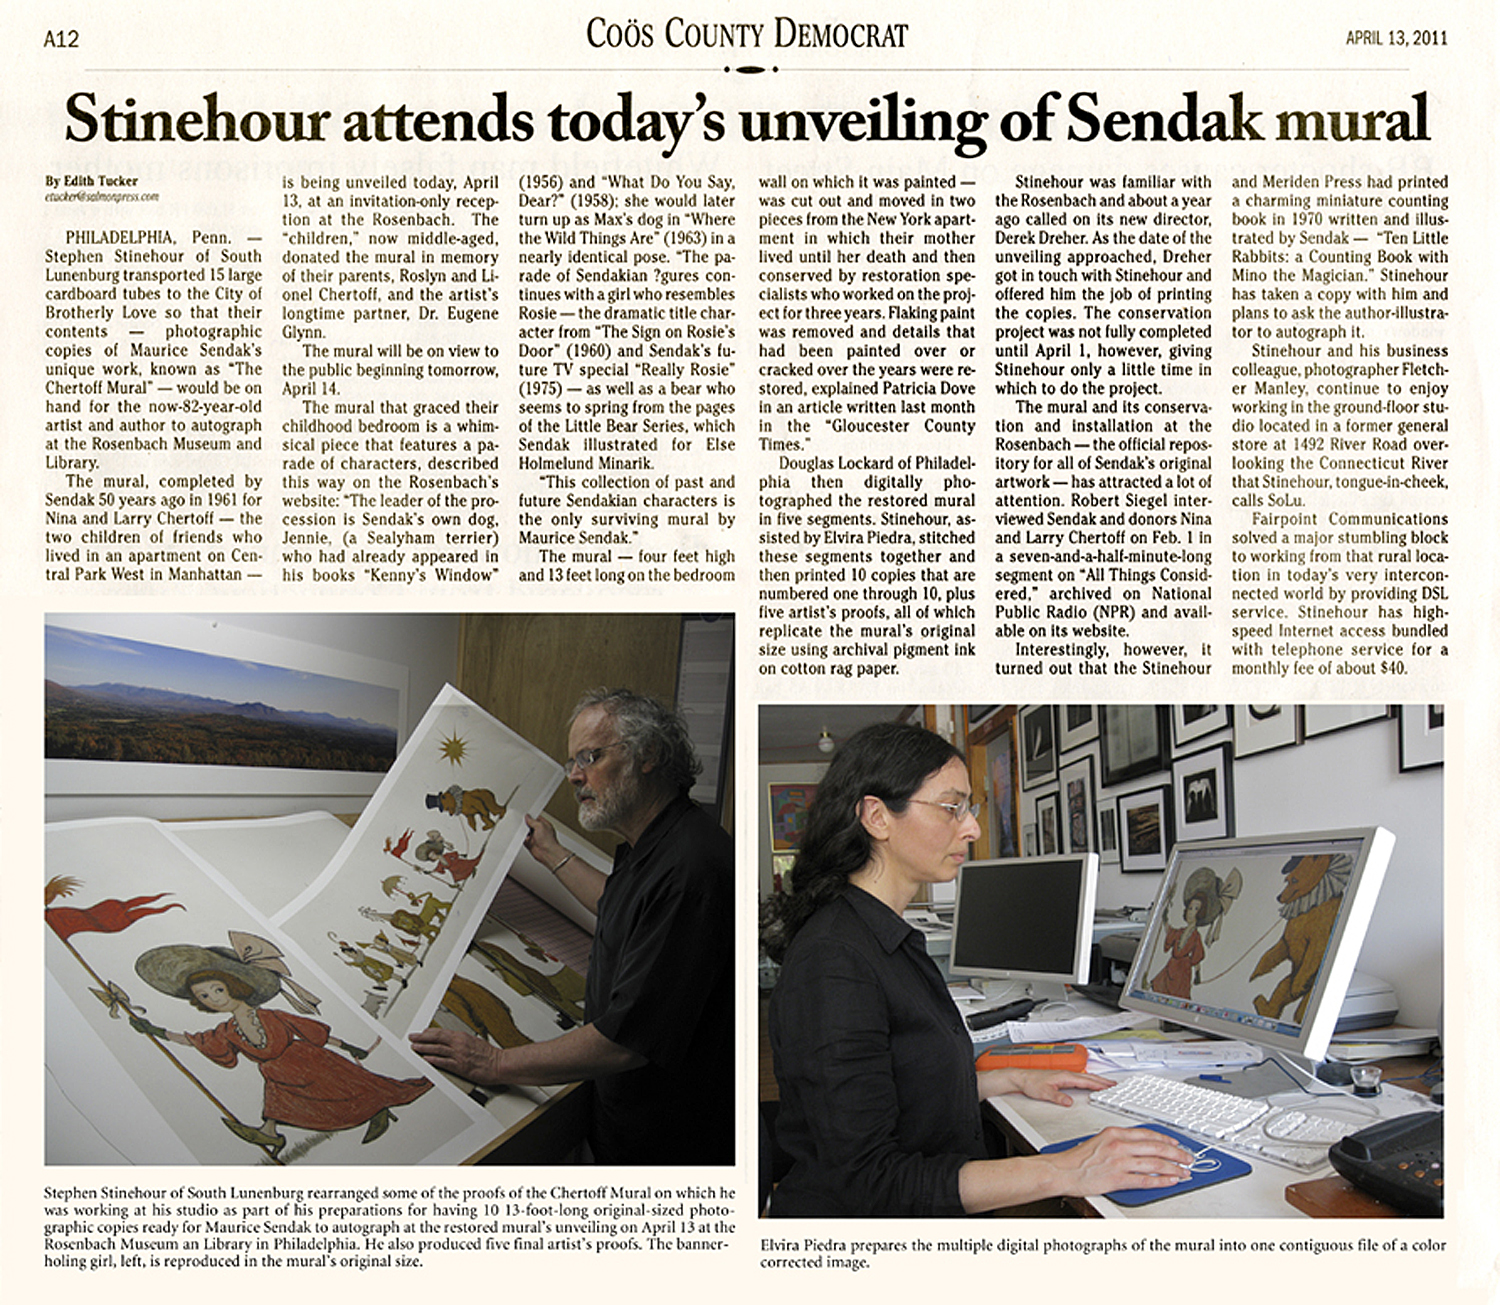 Article by Edith Tucker in Coös County Democrat on the reproduction of Maurice Sendak's  Chertoff Mural  at Stinehour Editions